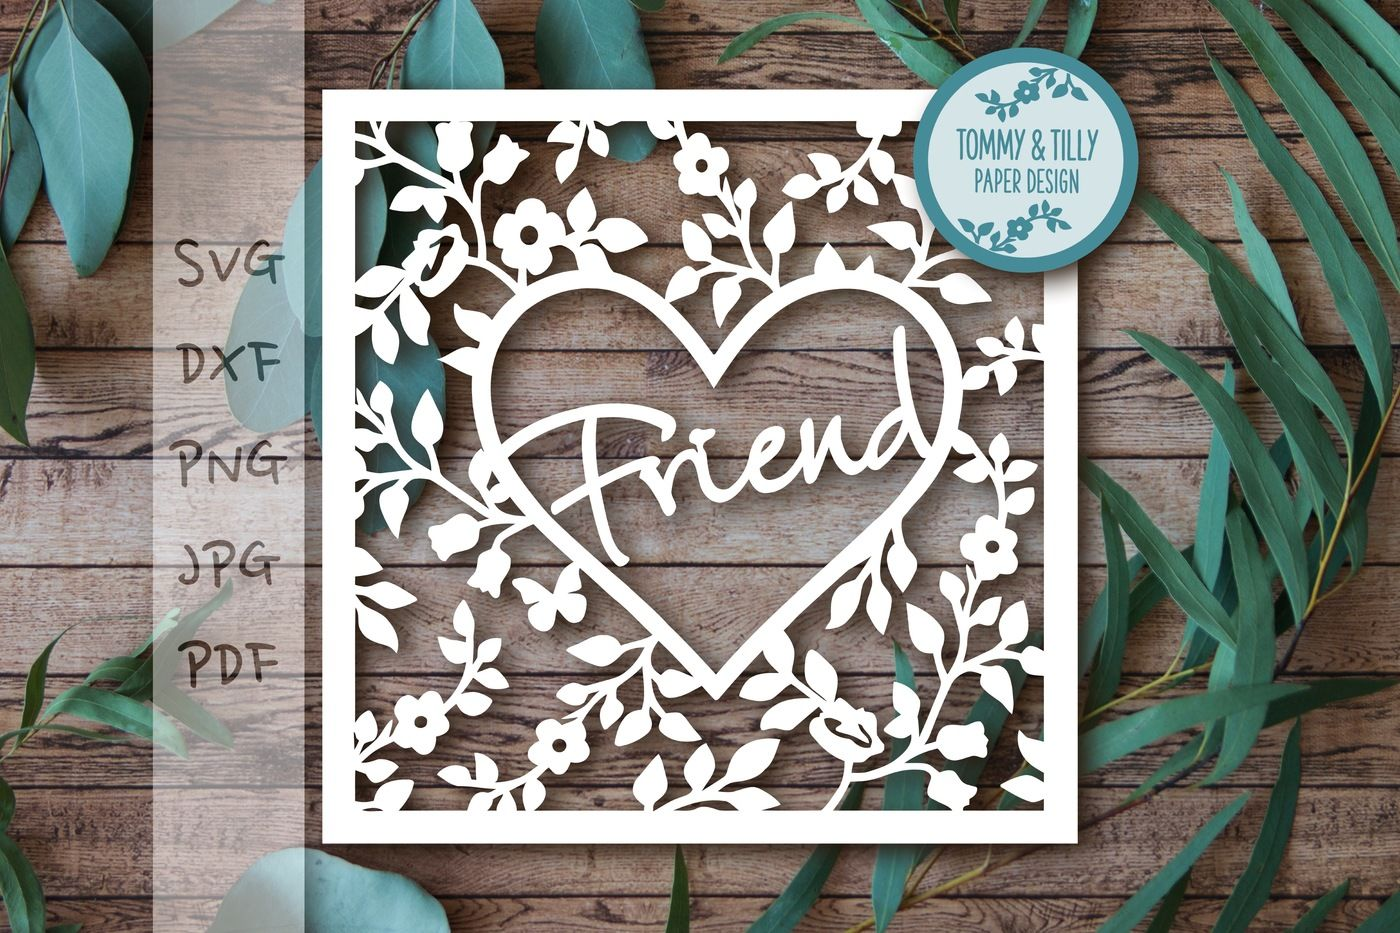 Friend Heart Frame Svg Dxf Png Pdf Jpg By Tommy And Tilly Design